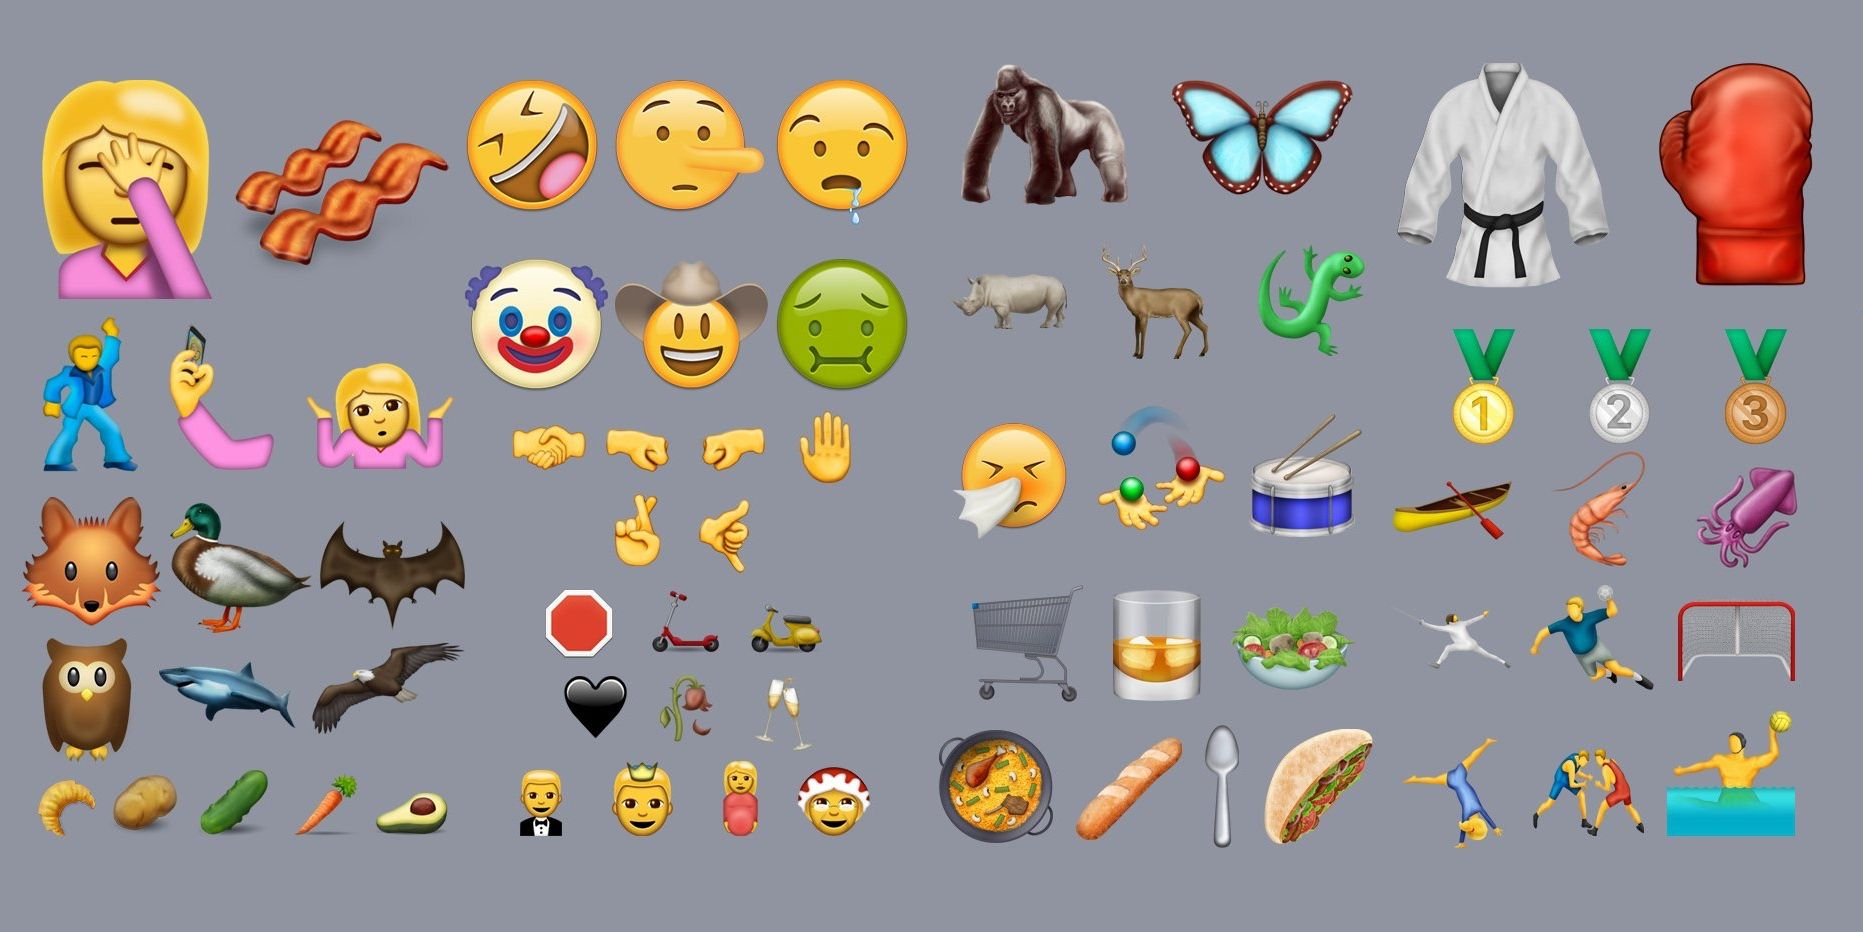 72 new emoji will be making their way to iPhone and iPad